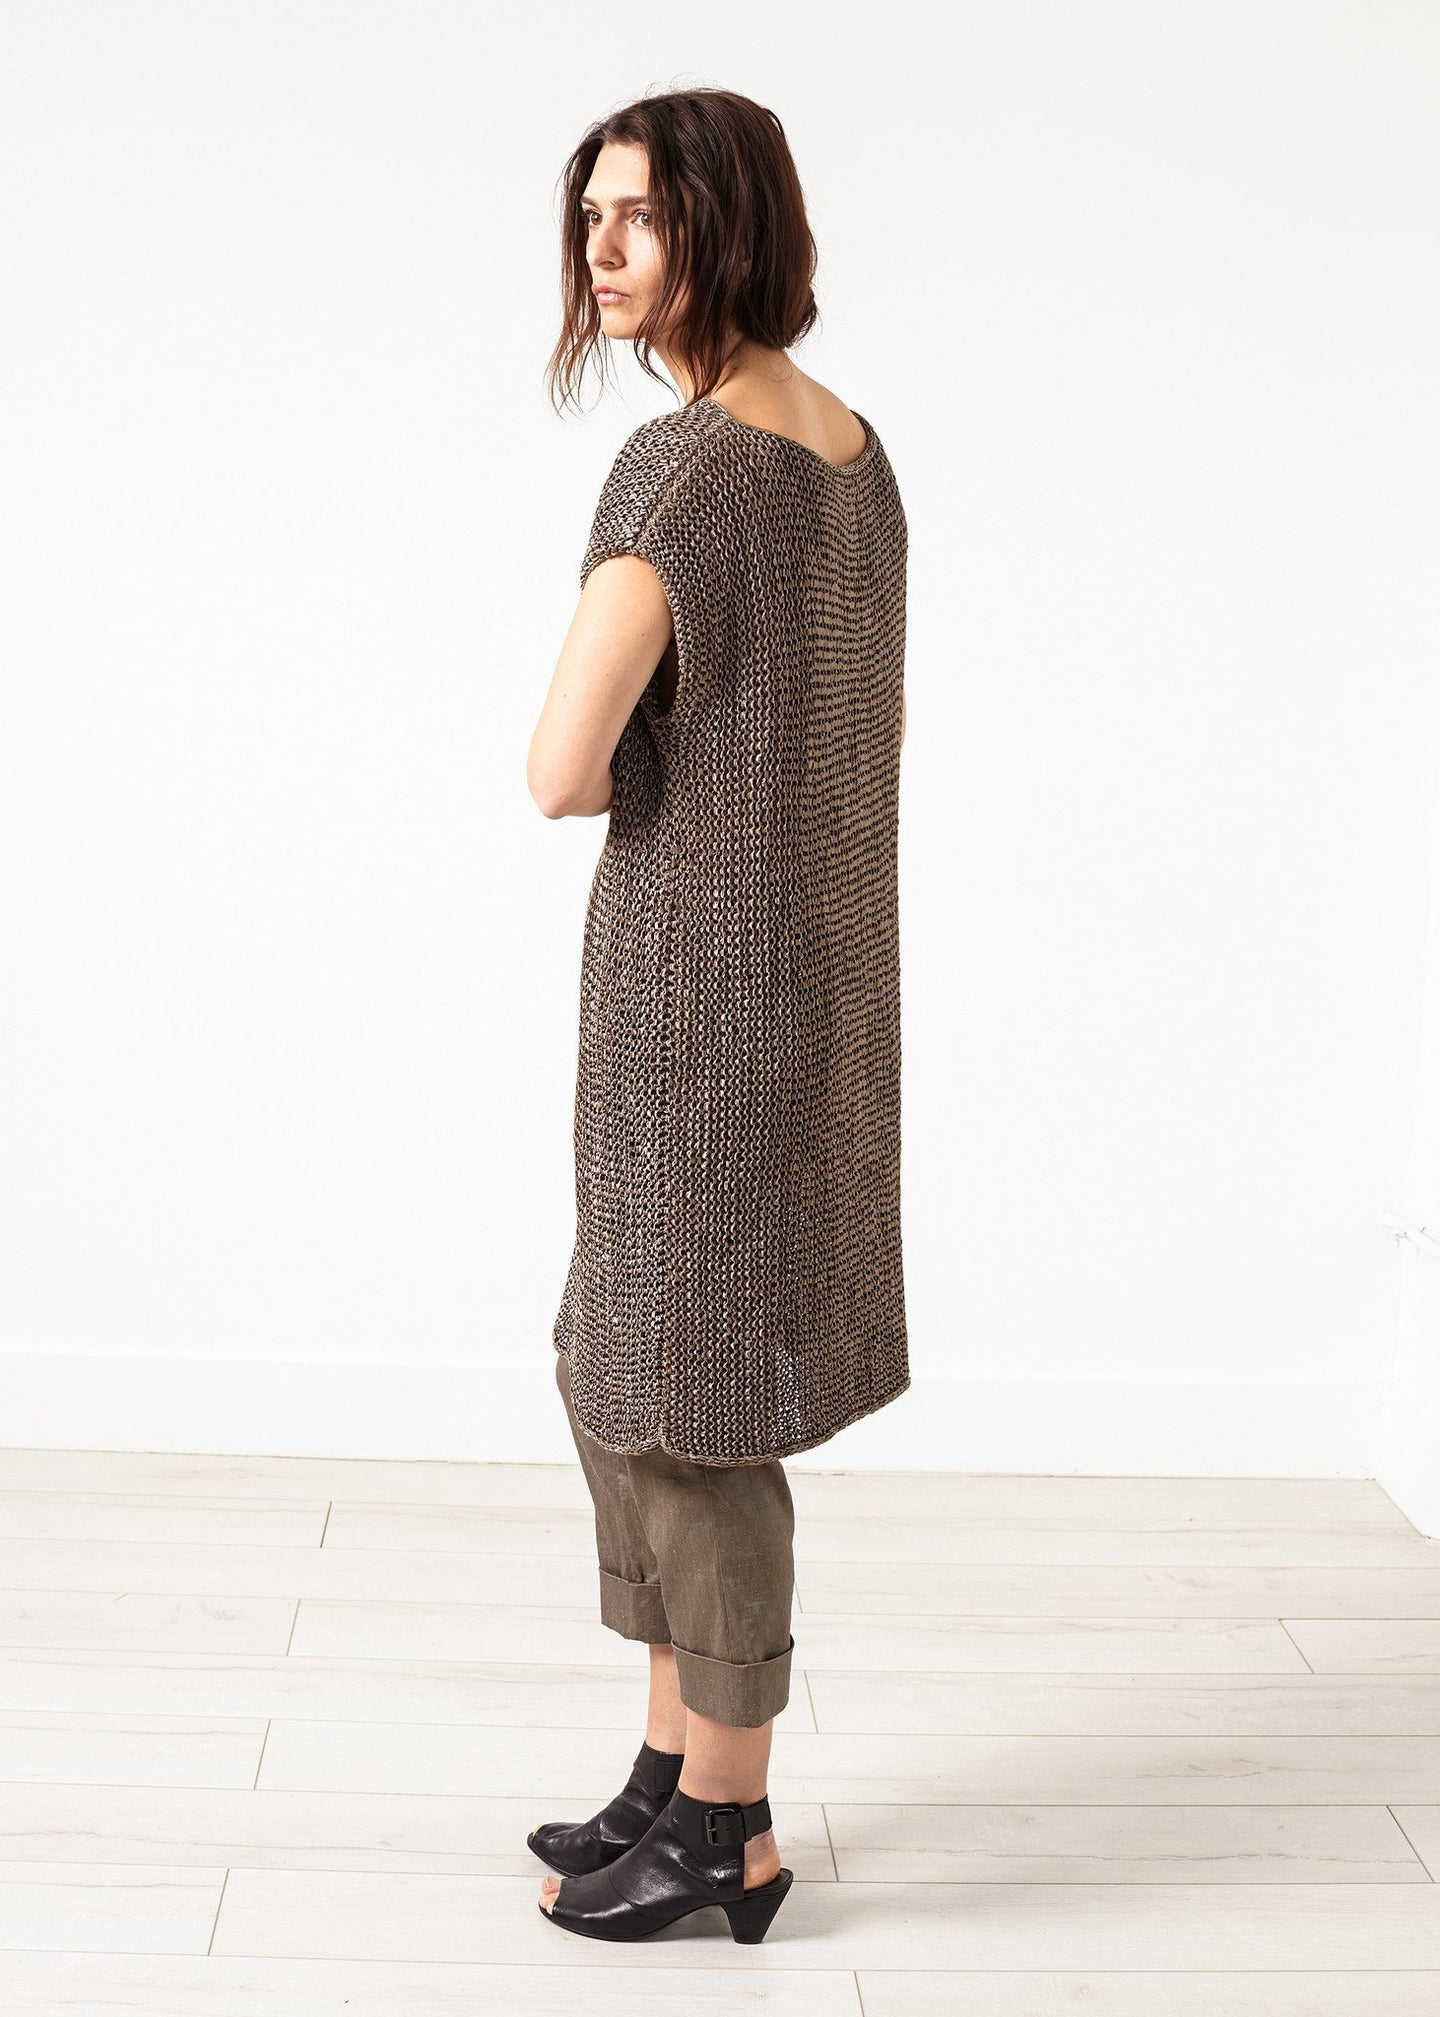 Cila Jumper in Mud